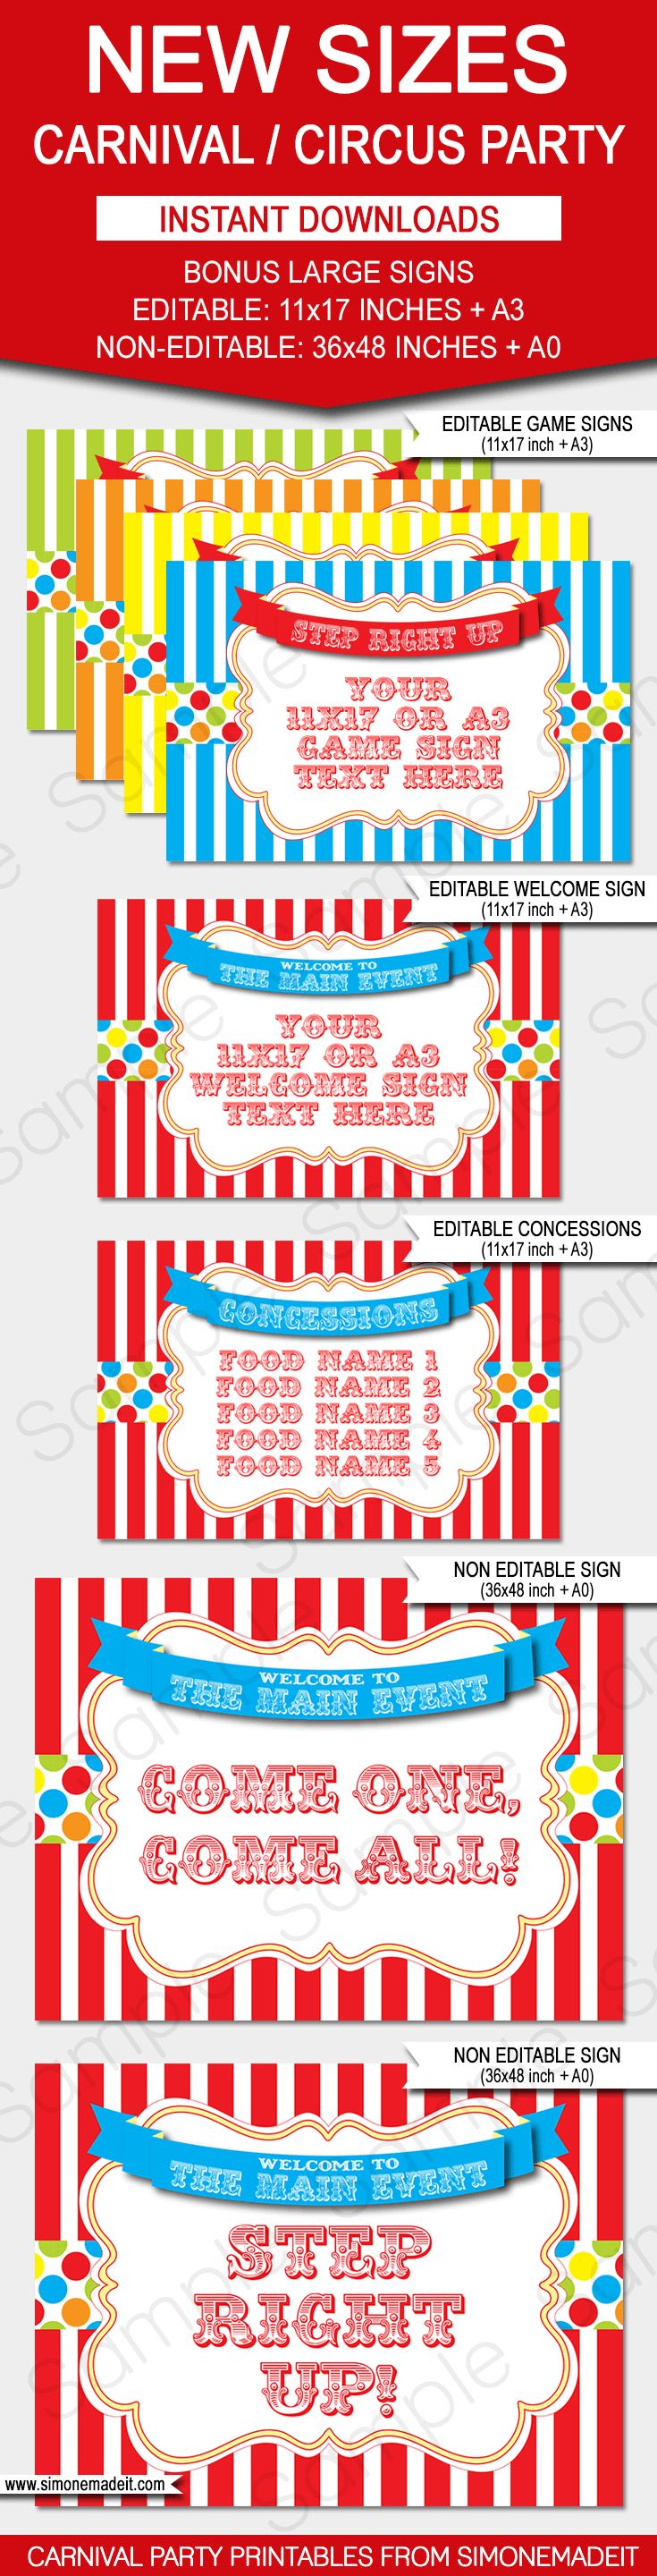 Carnival Signs | Circus Signs | Circus Theme Party | Carnival Theme Party | Welcome Sign | Concessions Sign | Game Signs | Party Decorations | via SIMONEmadeit.com